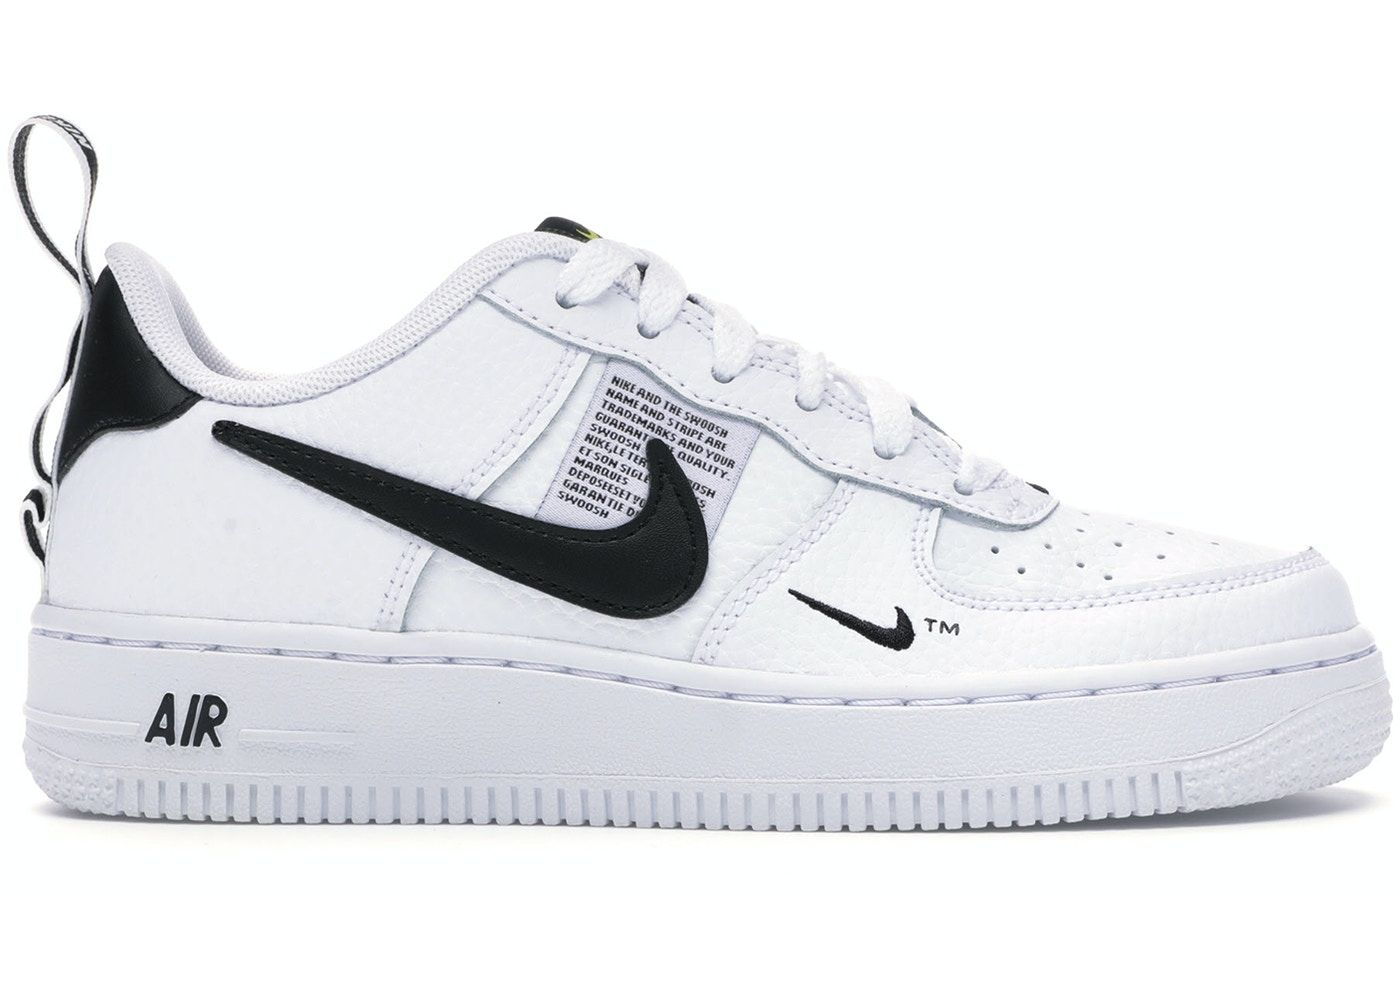 Nike Air Force 1 Low Utility White Black Gs In 2021 Nike Air Force Nike Air Force 1 Low